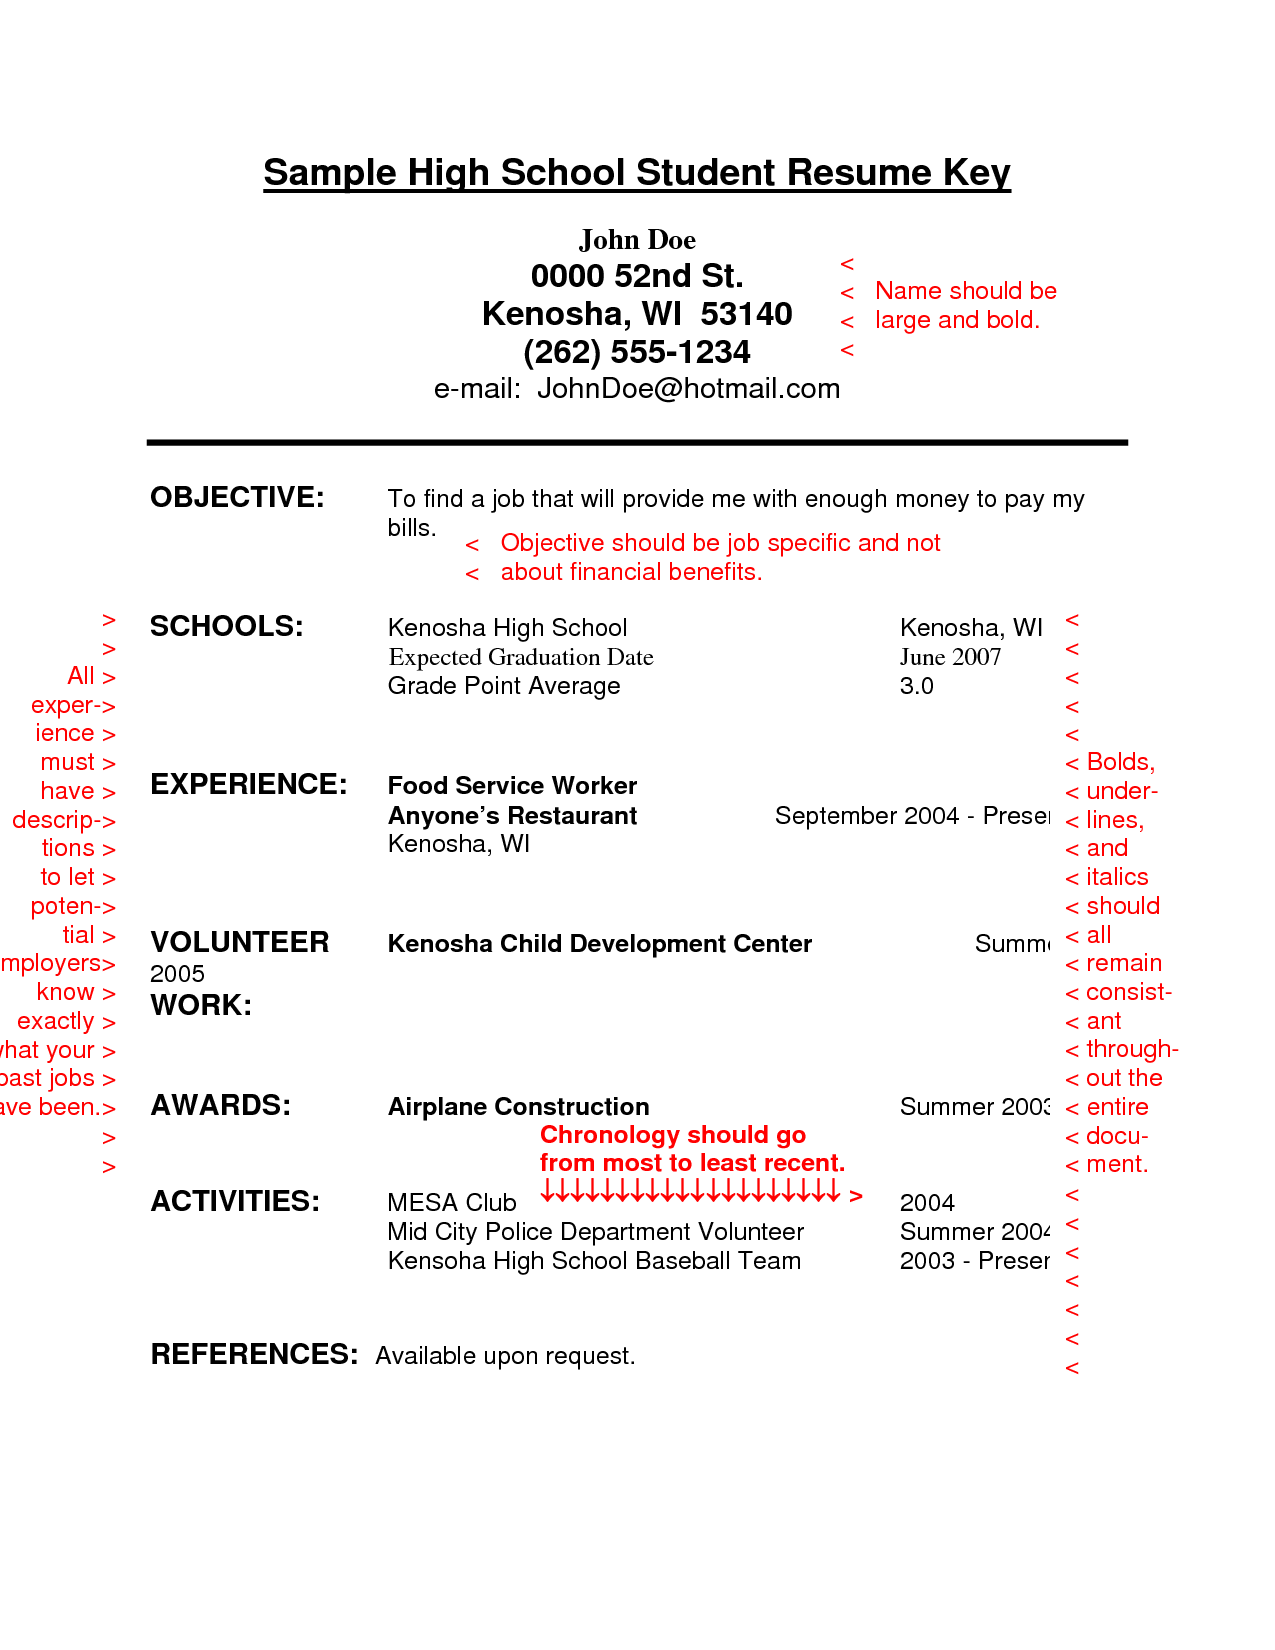 Resume Sample For High School Students With No Experience   Http://www.  Example Of High School Resume